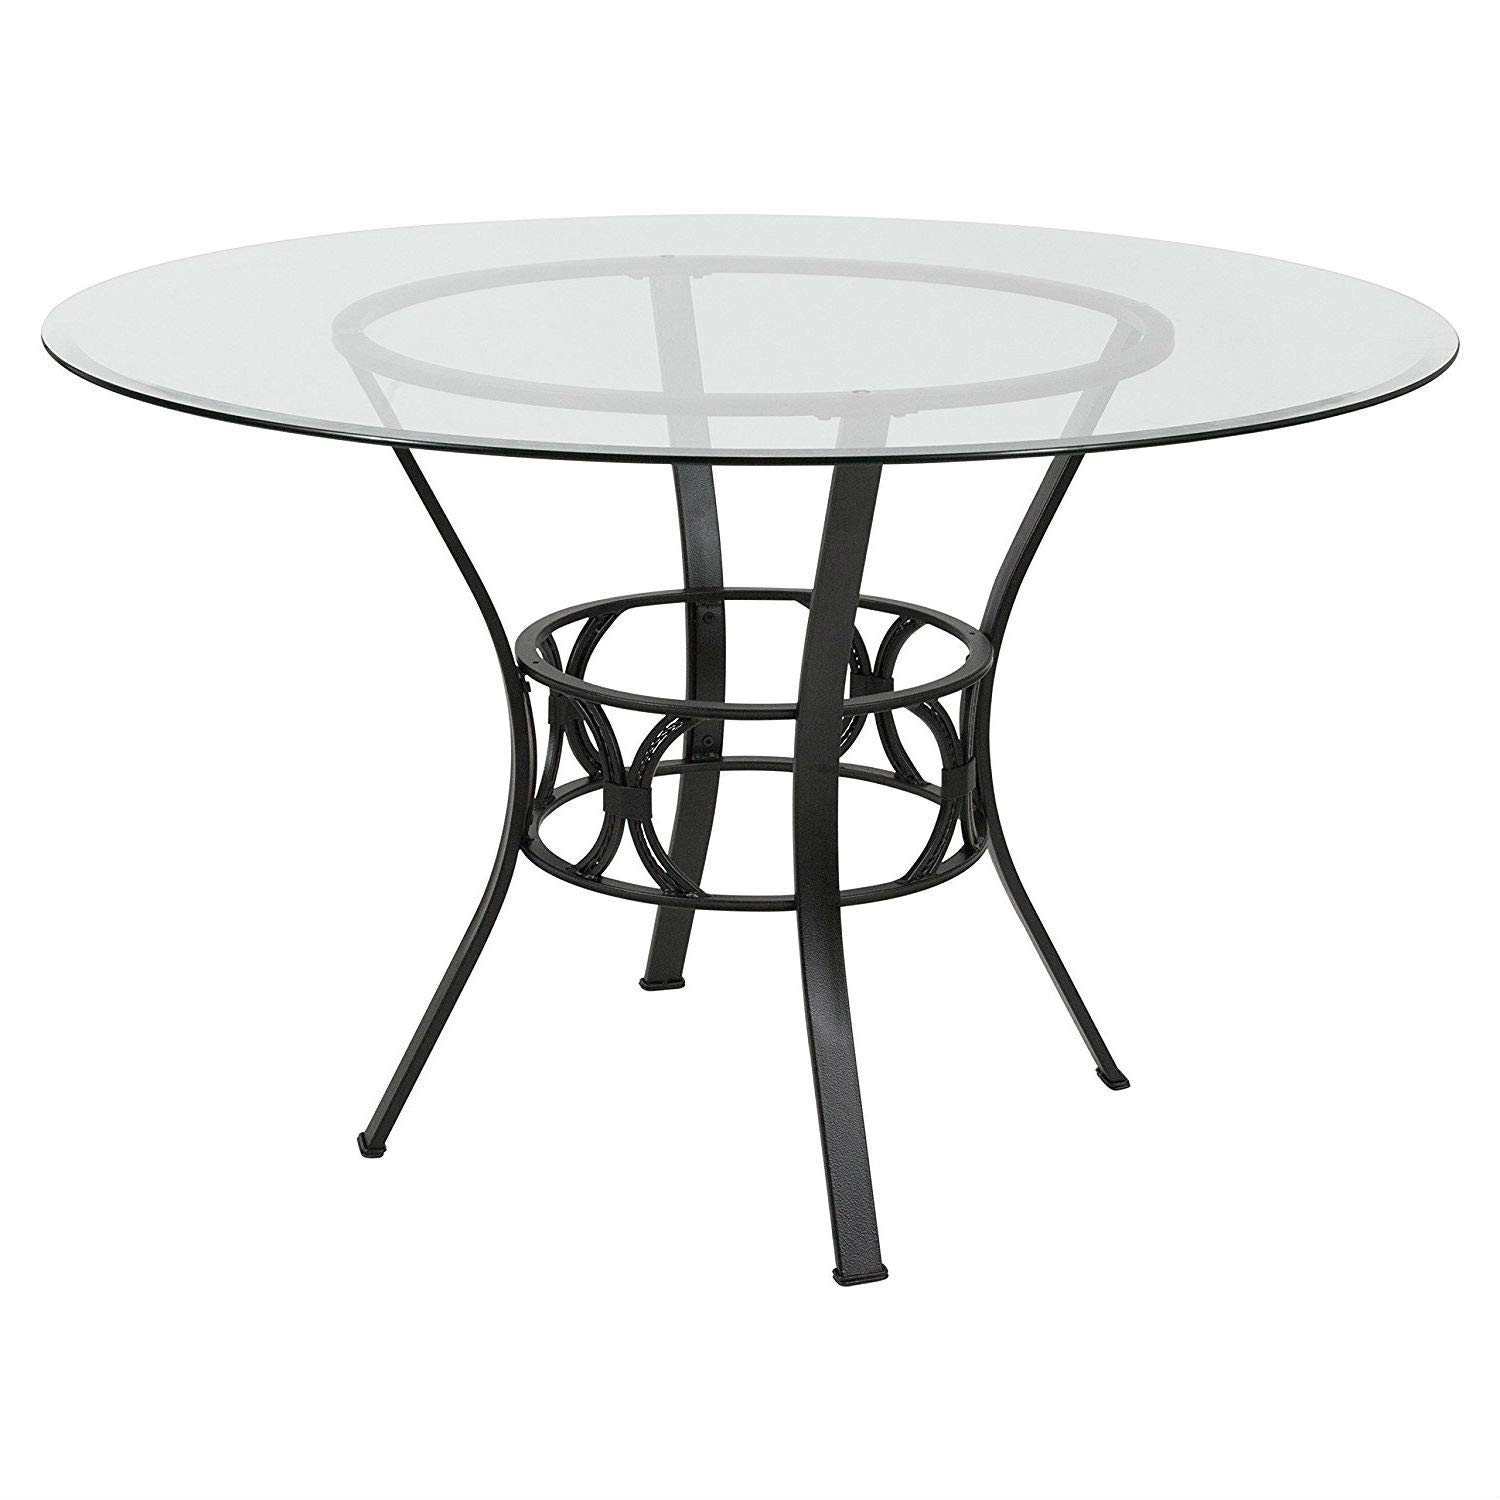 30 X 48 Dining Table Find Deals